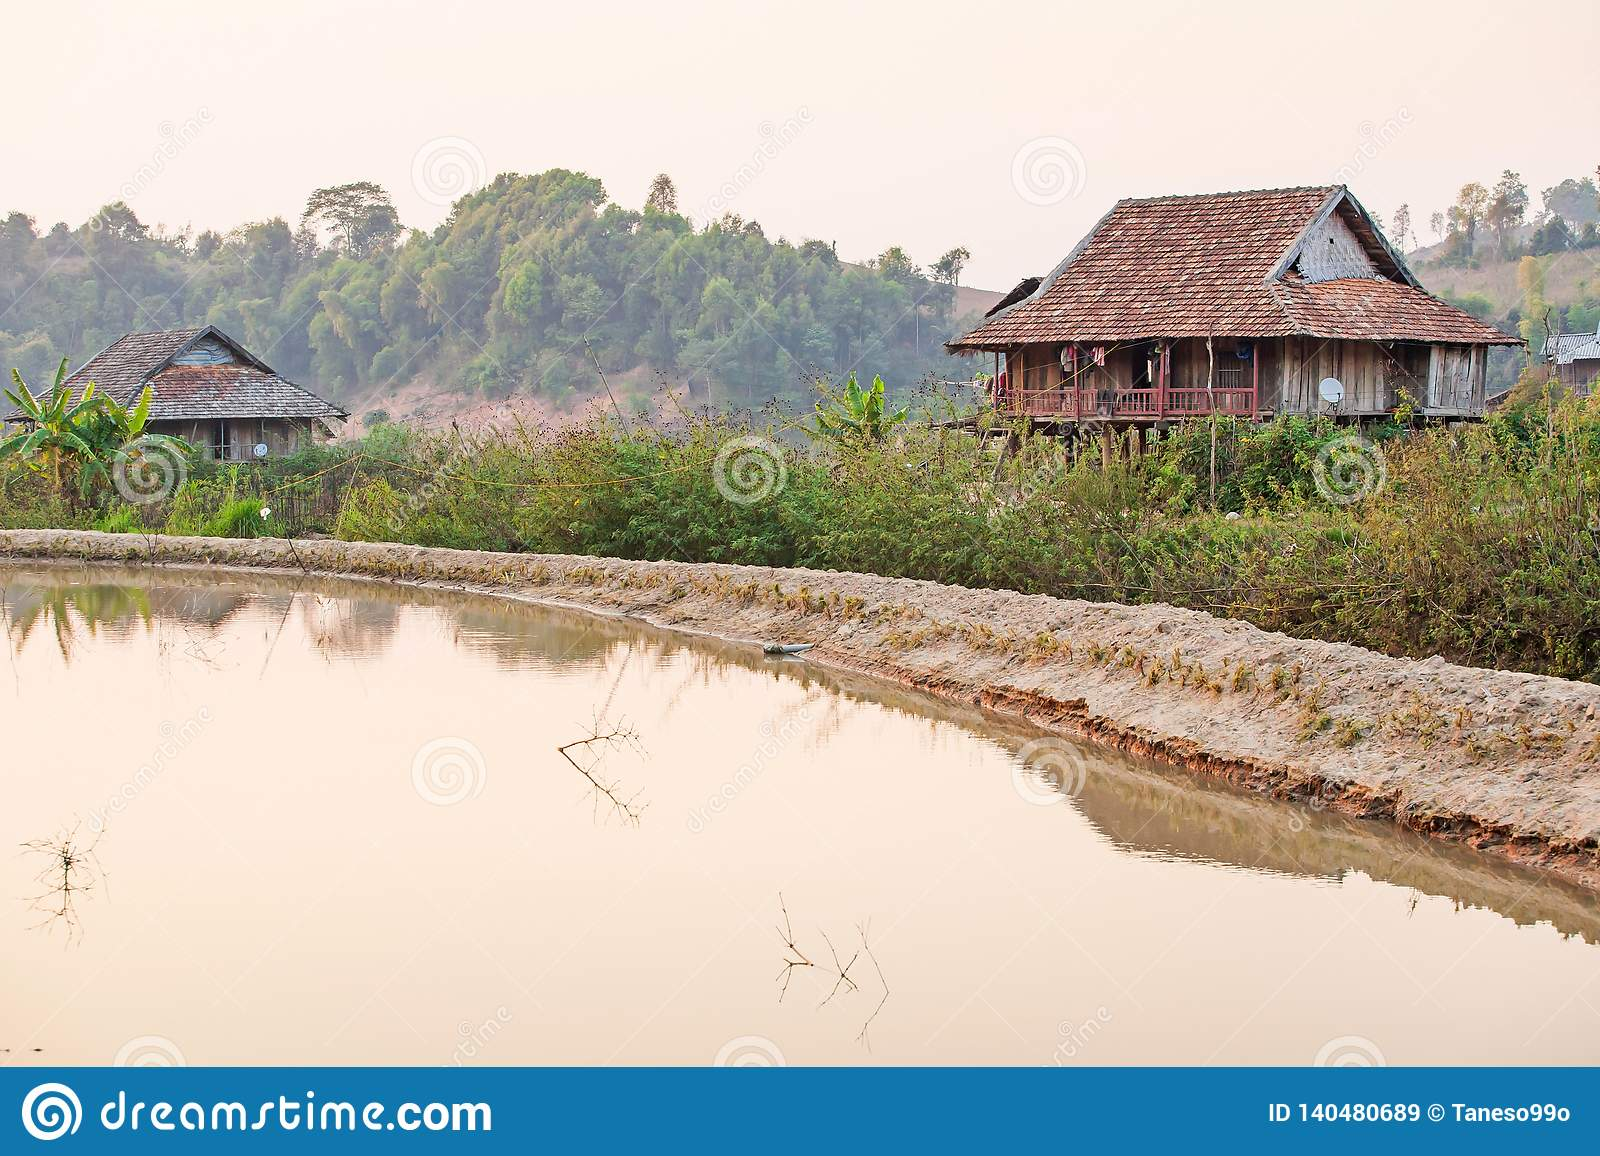 Scenic rural of vietnam at sunset, two old wooden house, brown earthenware roof, pool foreground, forest and mountains backgrounds